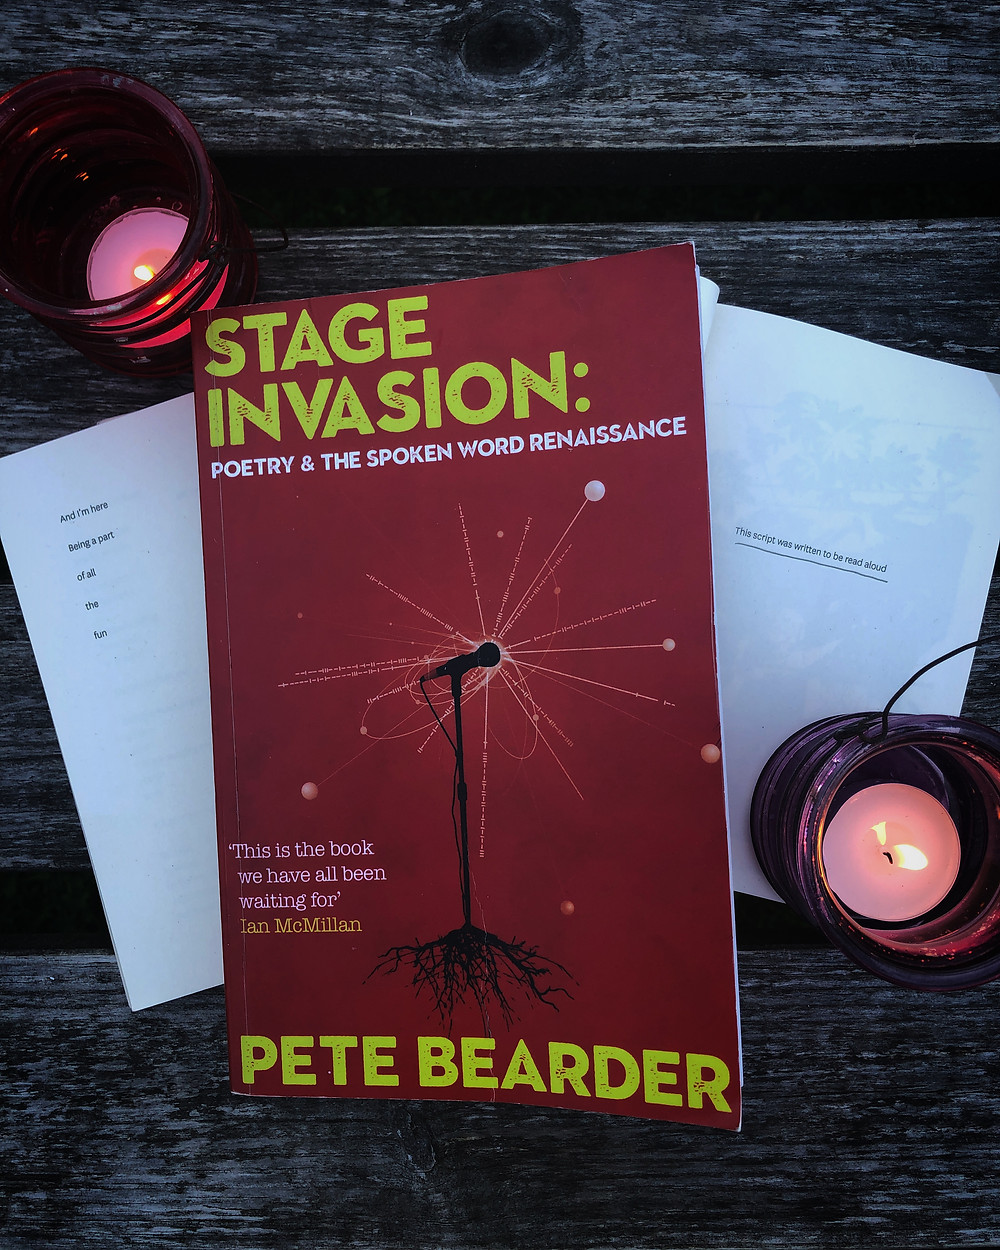 Stage Invasion book cover next to two tealight candles